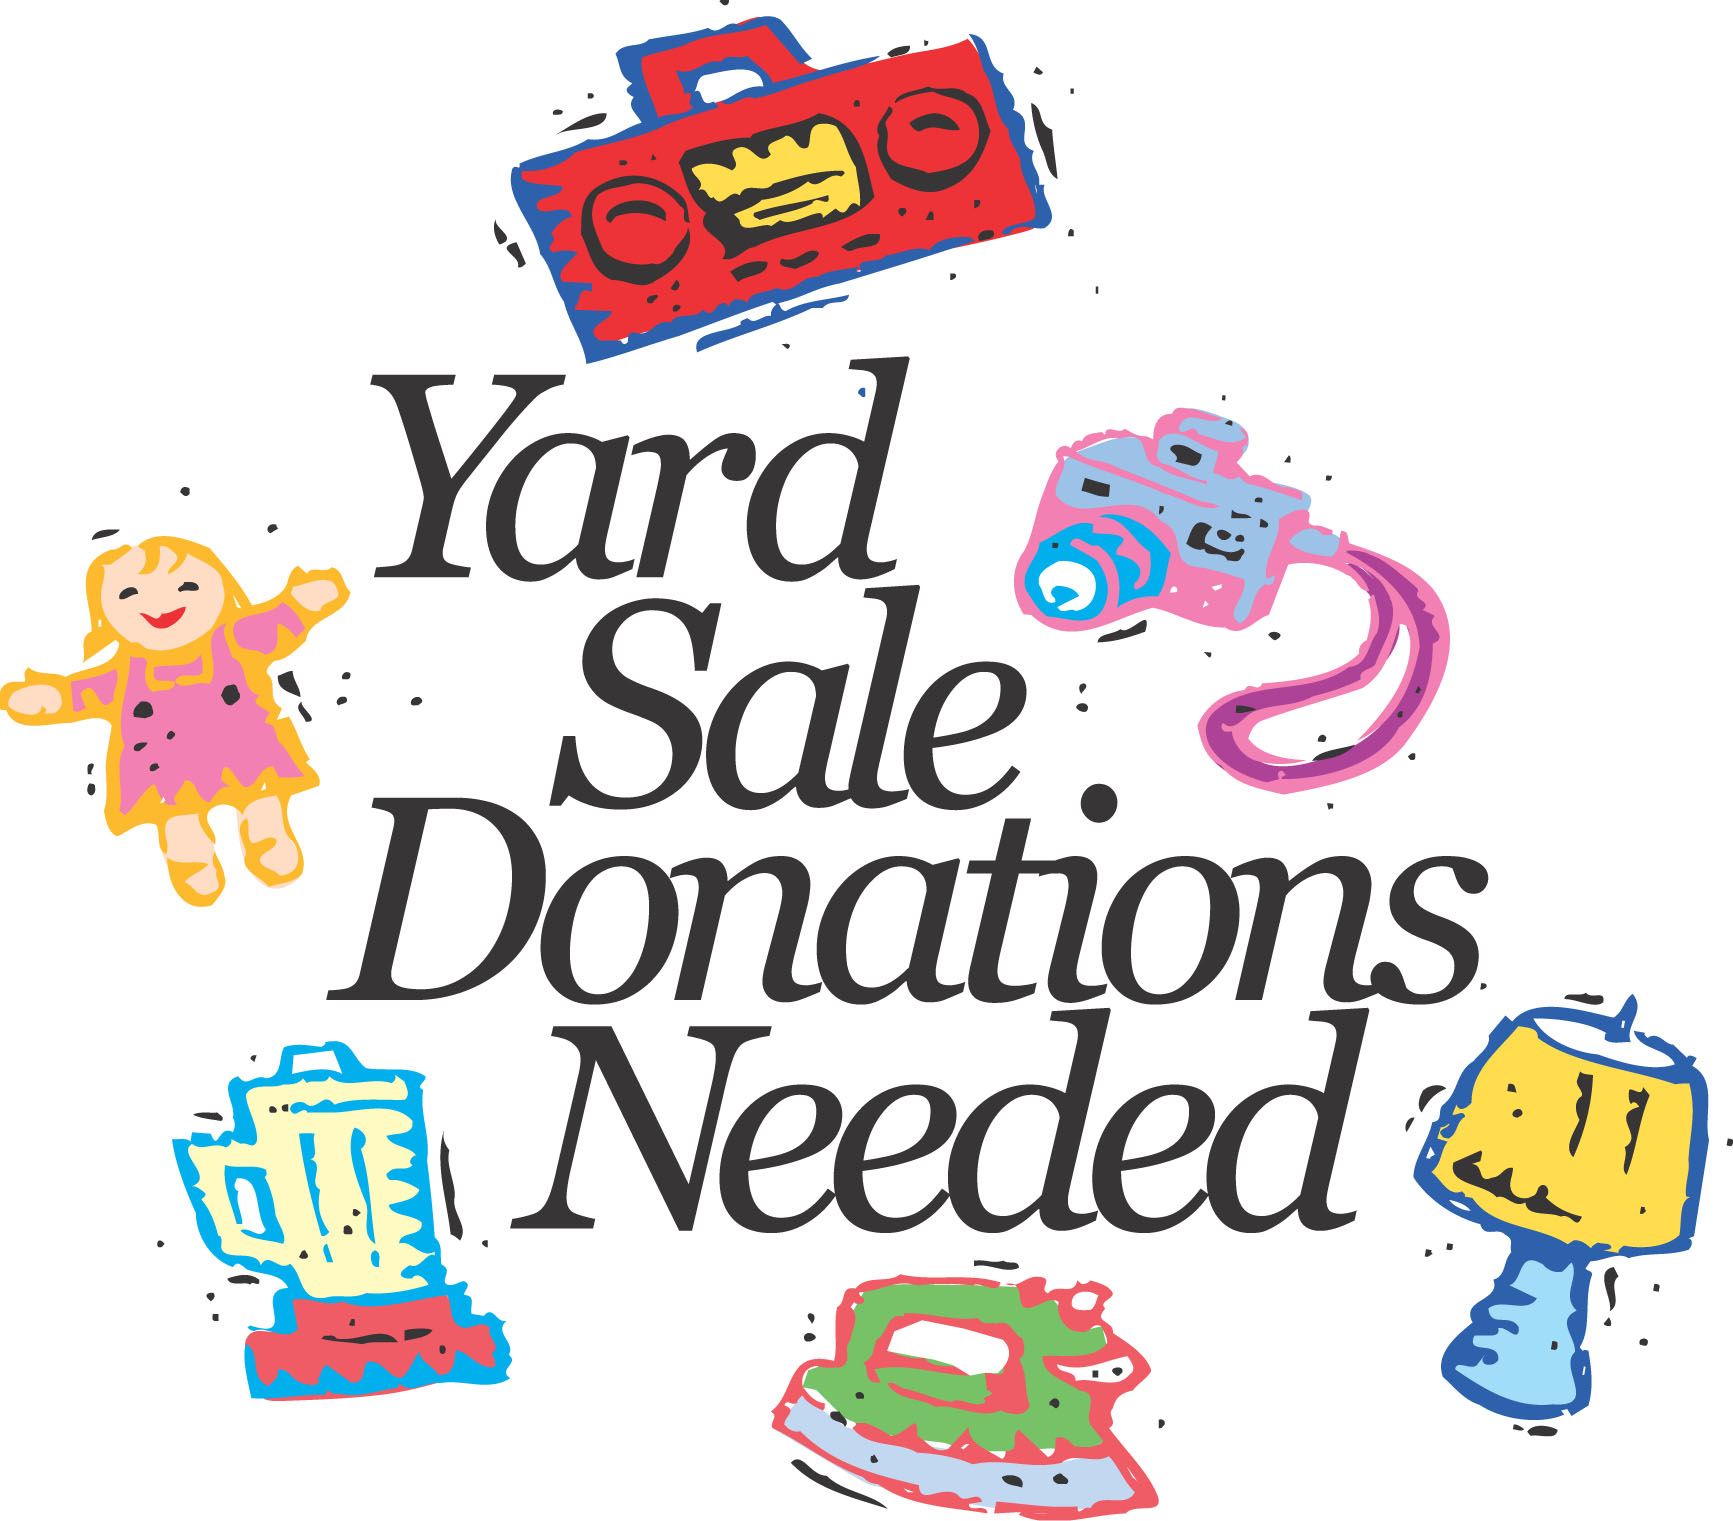 Yard sale church garage sale clipart